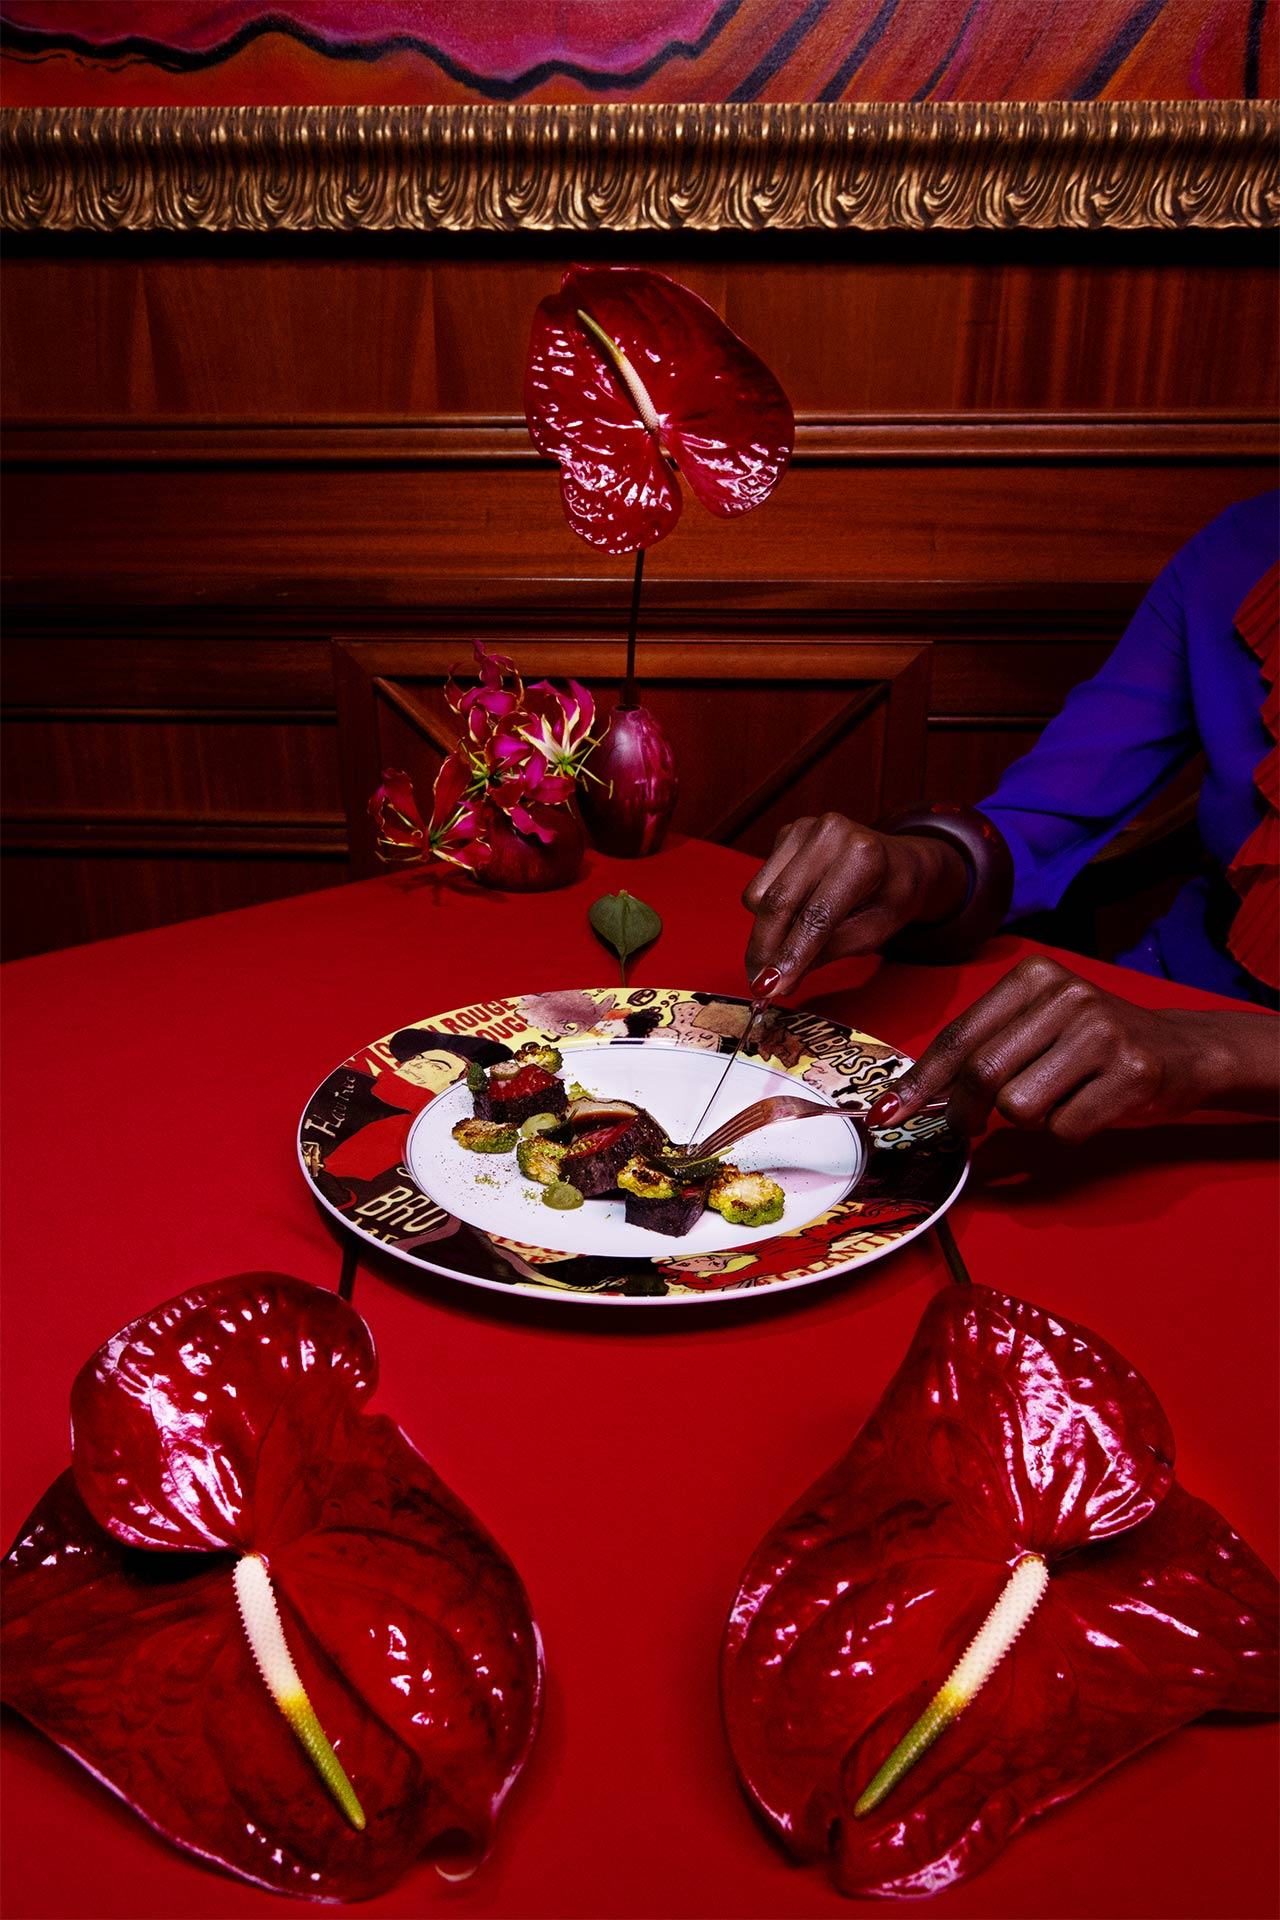 A woman cutting food on a red table in a red room with red flowers